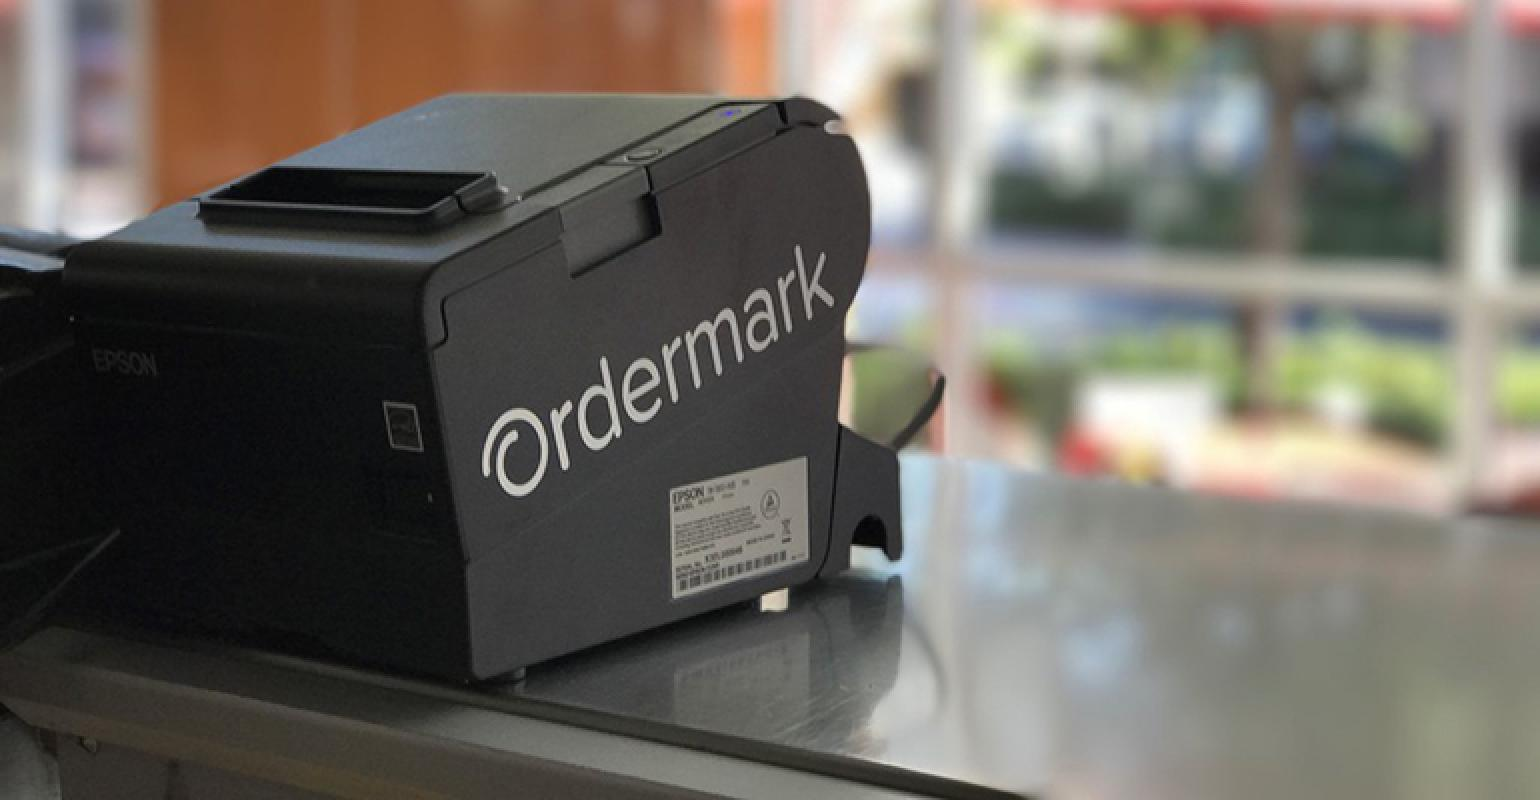 New services aim to streamline delivery tech | Restaurant